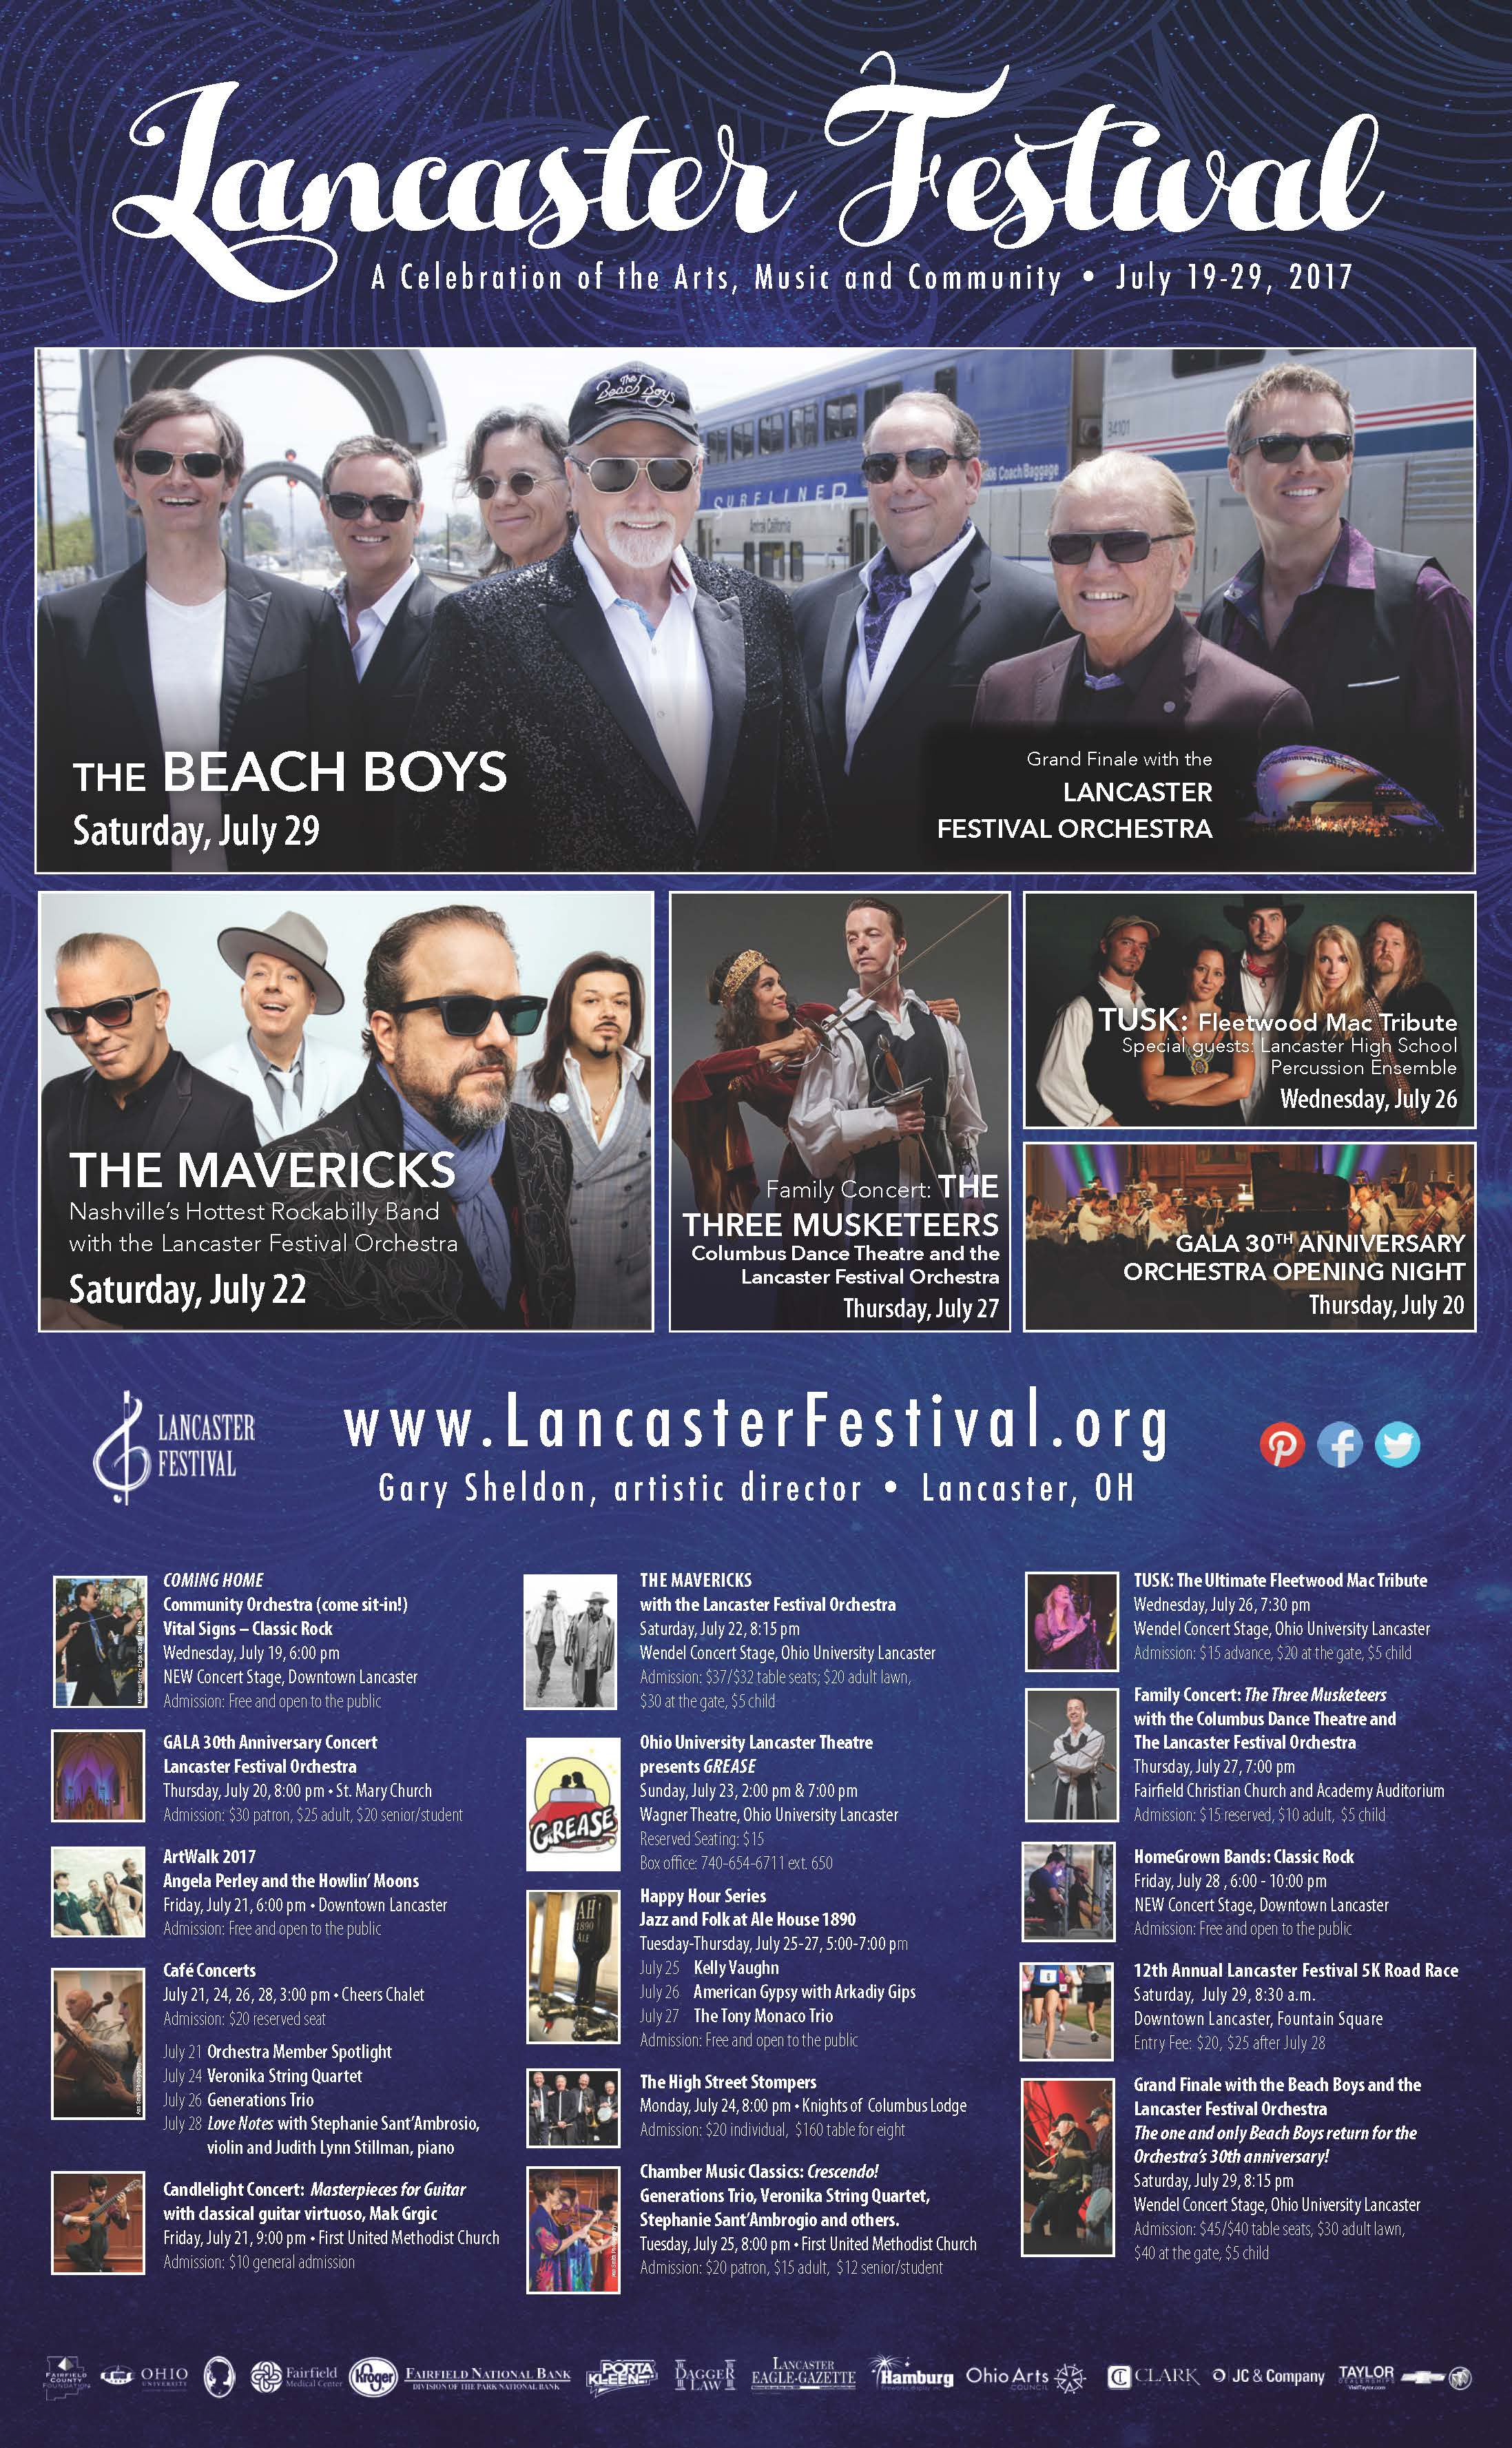 Lancaster Festival 2017 information page 1